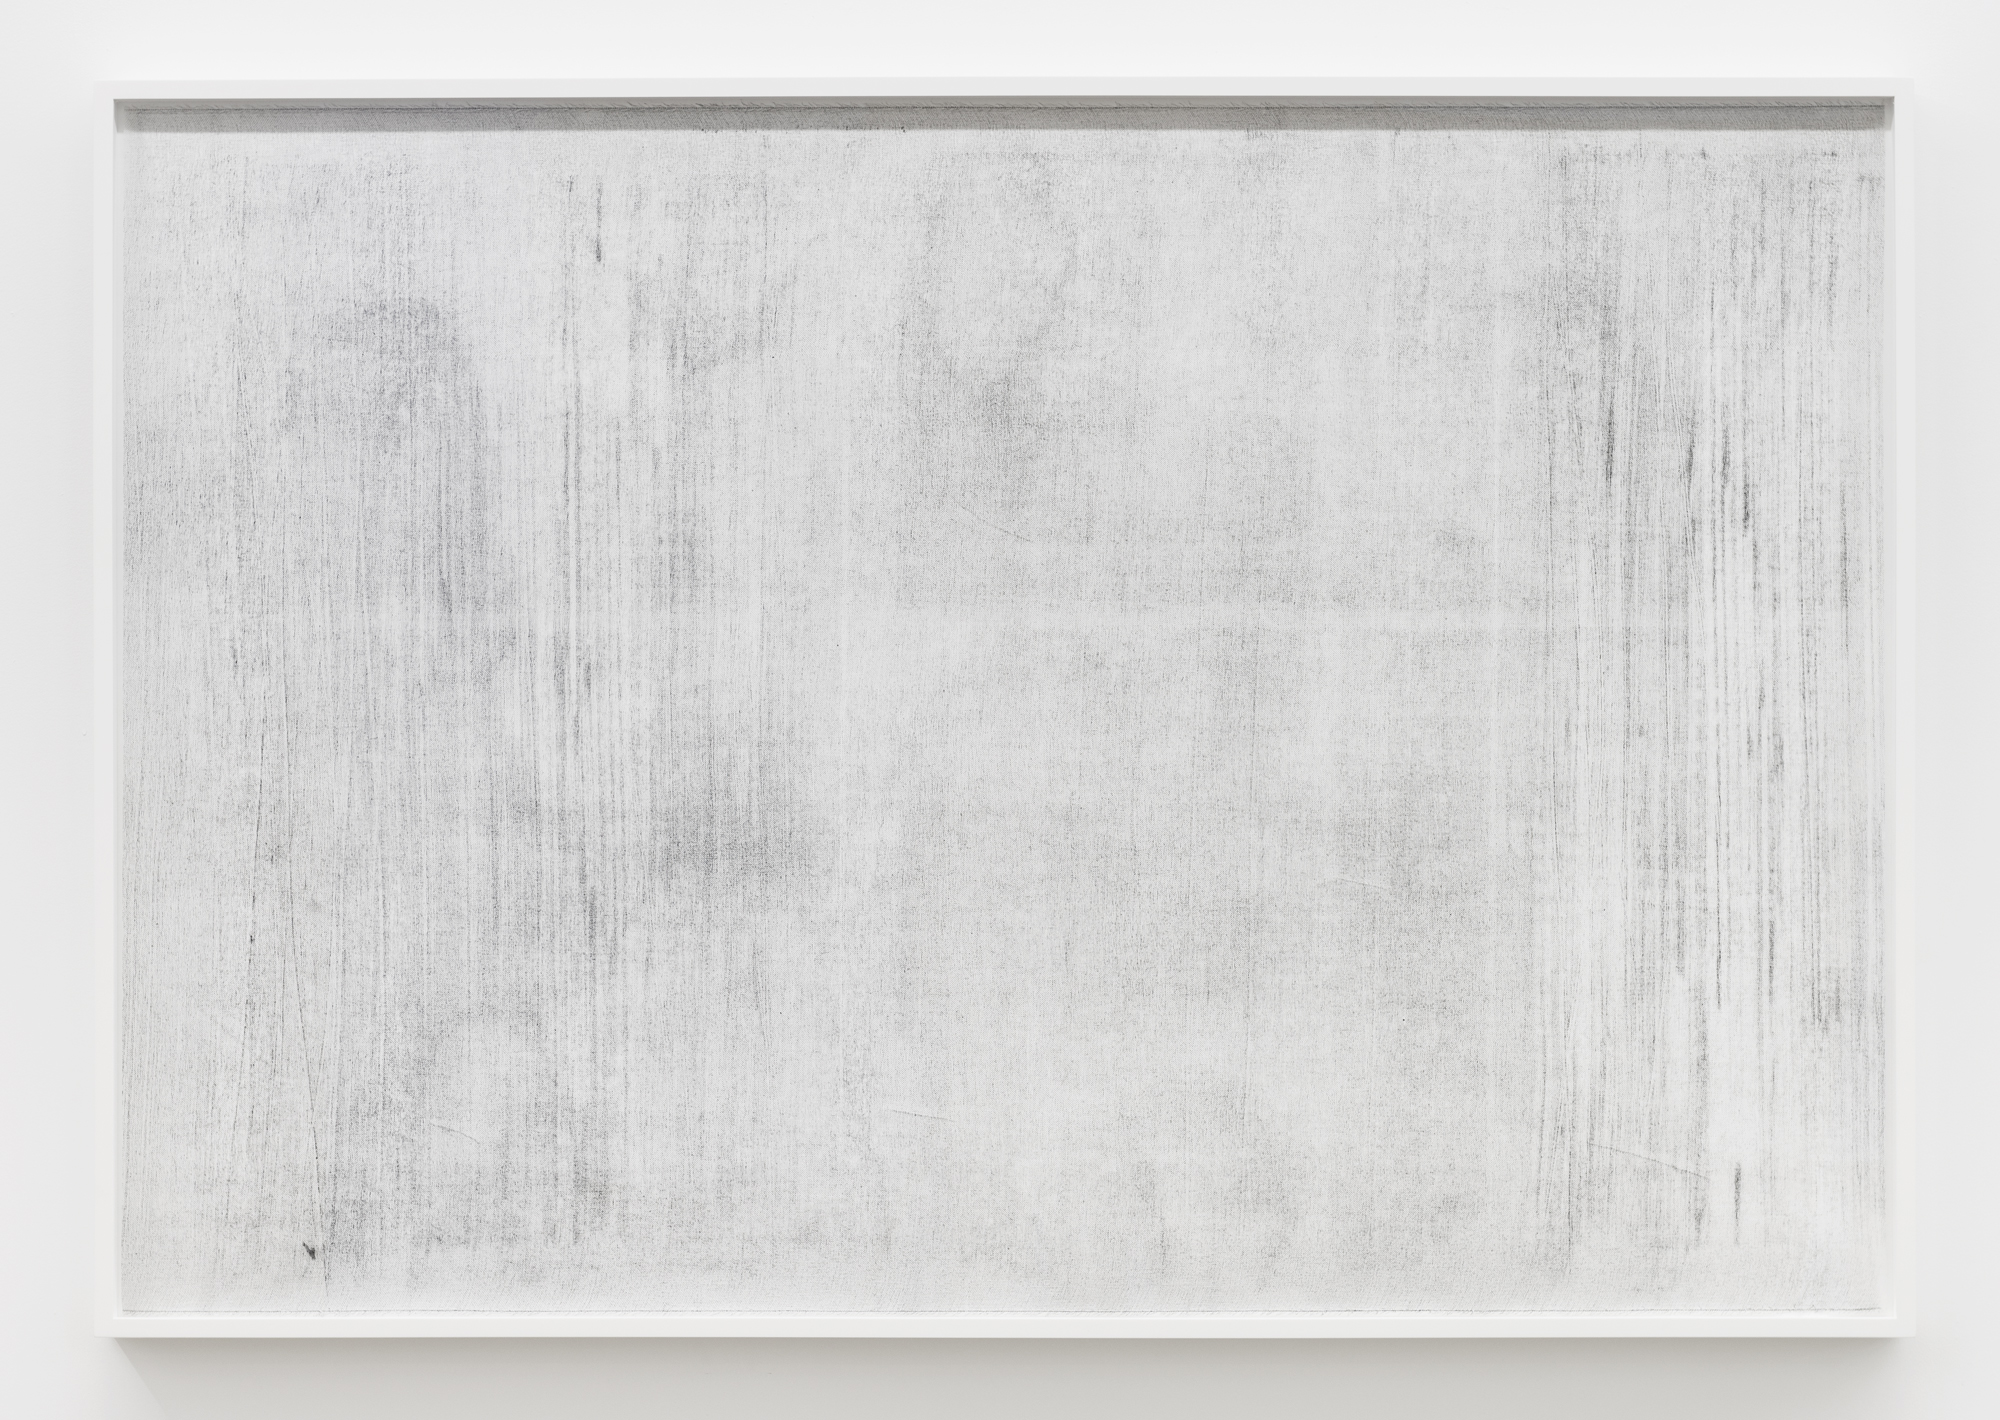 """Jim Verburg,  Untitled (where it becomes clear #1) , 2018, oil, graphite and charcoal on tarlatan, 41"""" x 59"""" (102 x 147 cm)"""